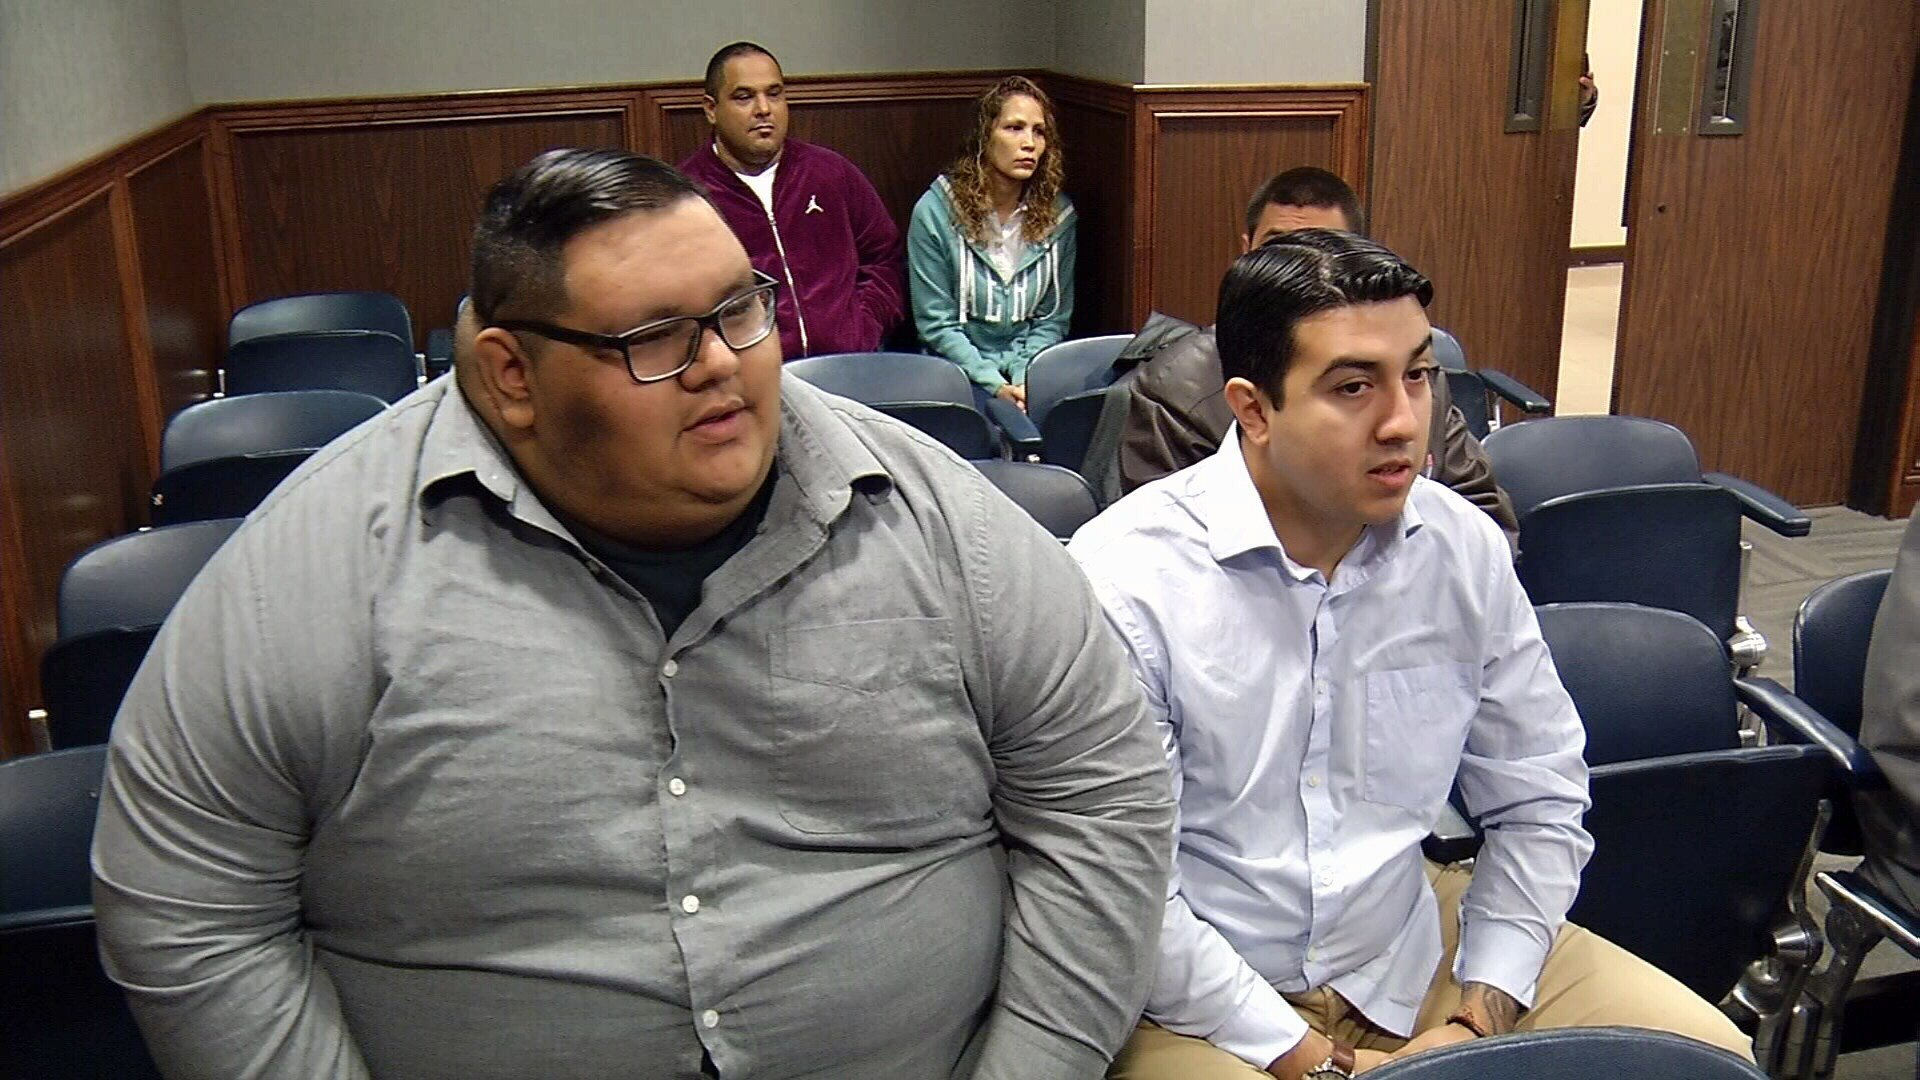 Raul Flores and Anthony Munoz are facing a charge of aggravated assault by a public servant.